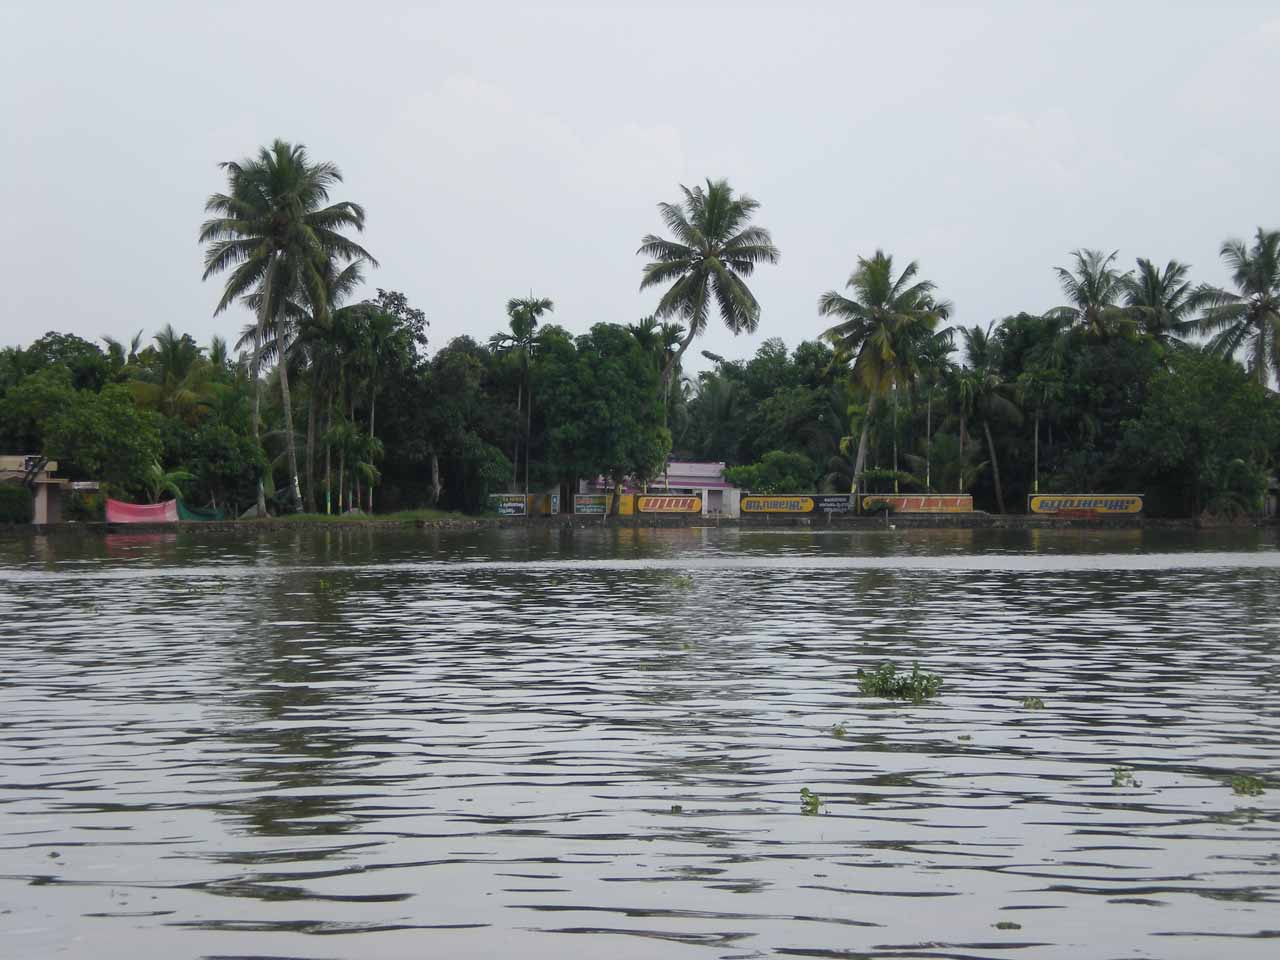 Within the backwaters looking out from the houseboat